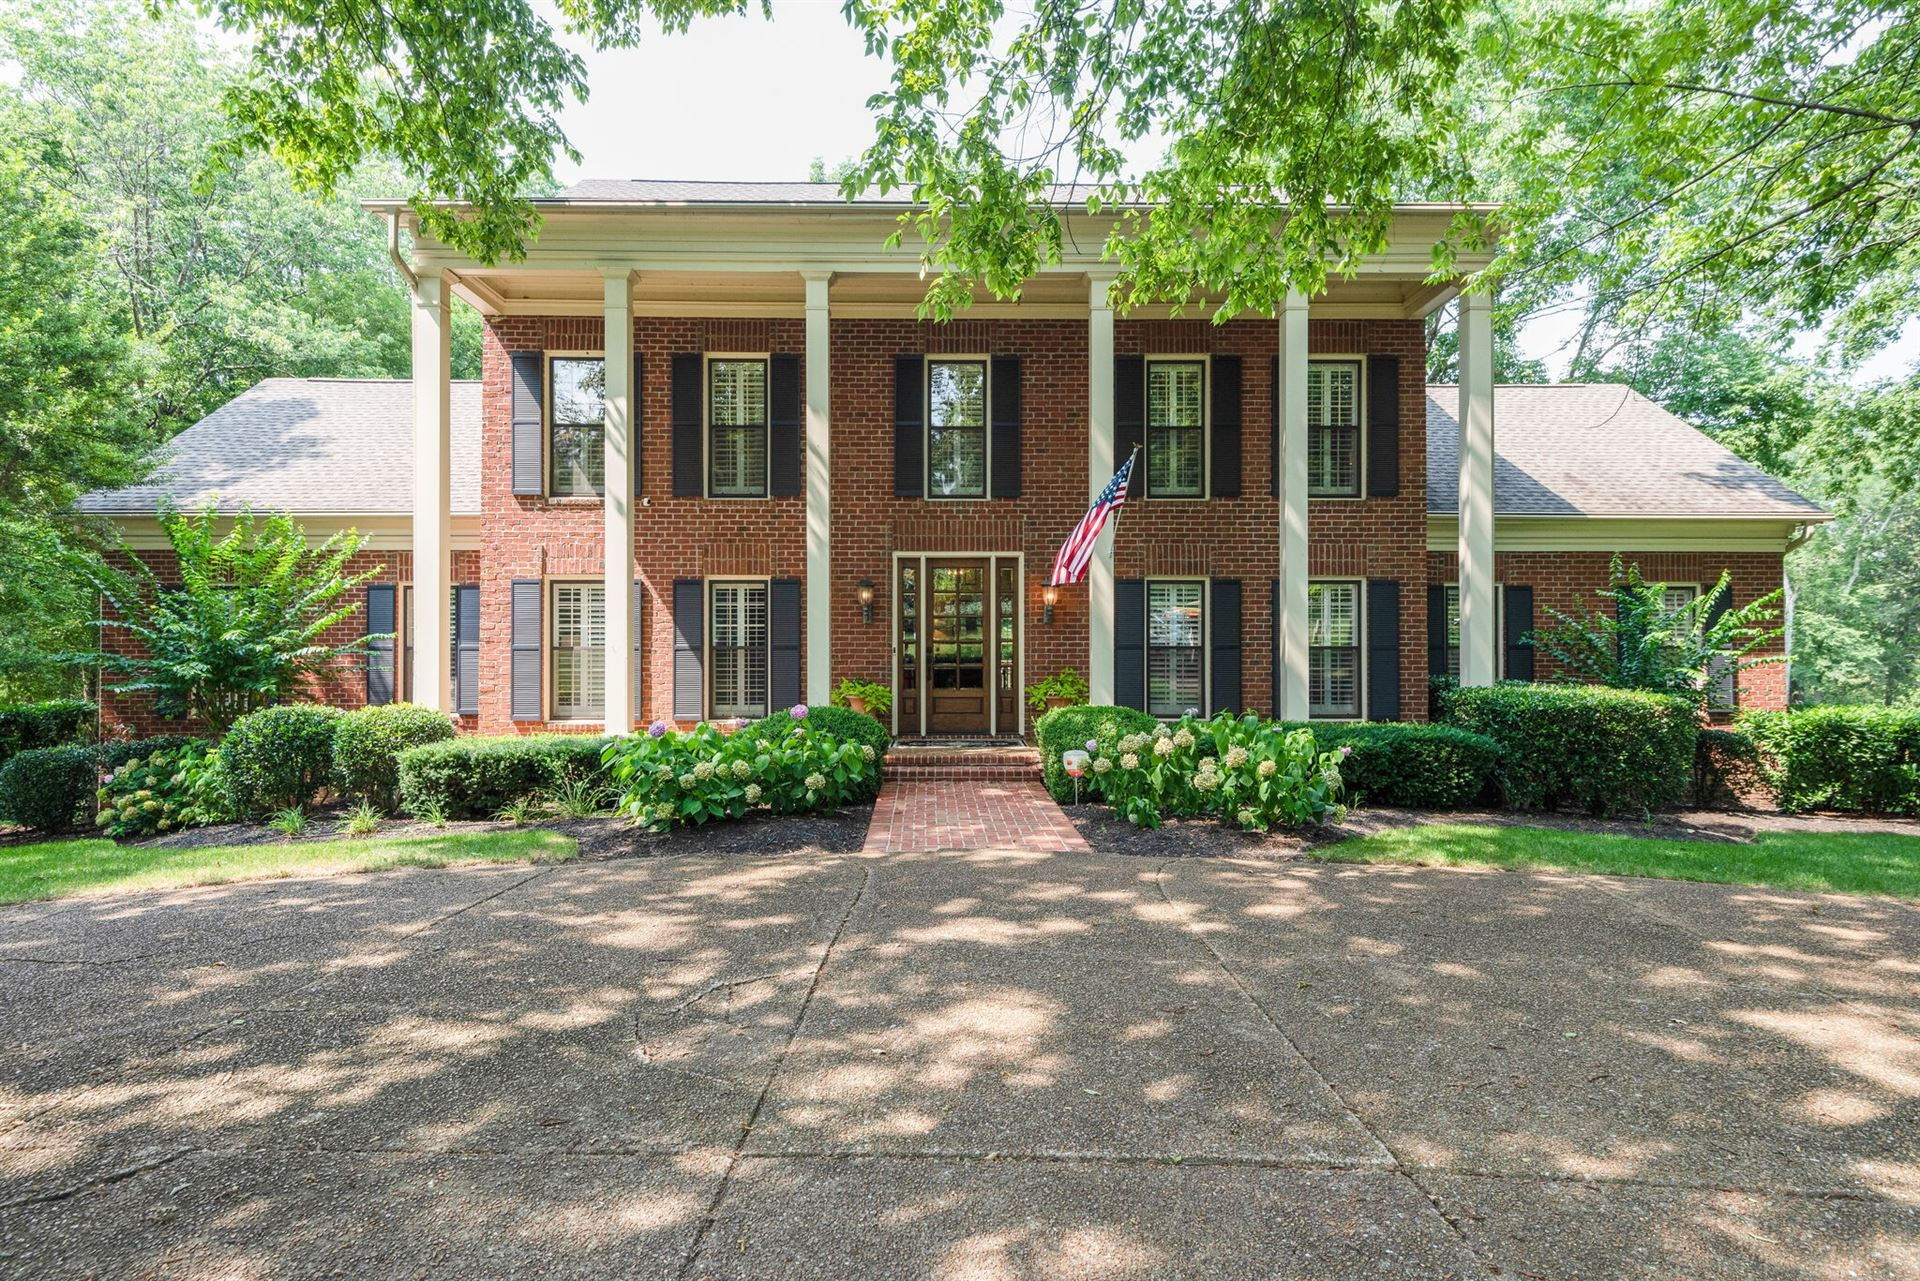 9012 Concord Rd, Brentwood, TN 37027 - MLS#: 2275881